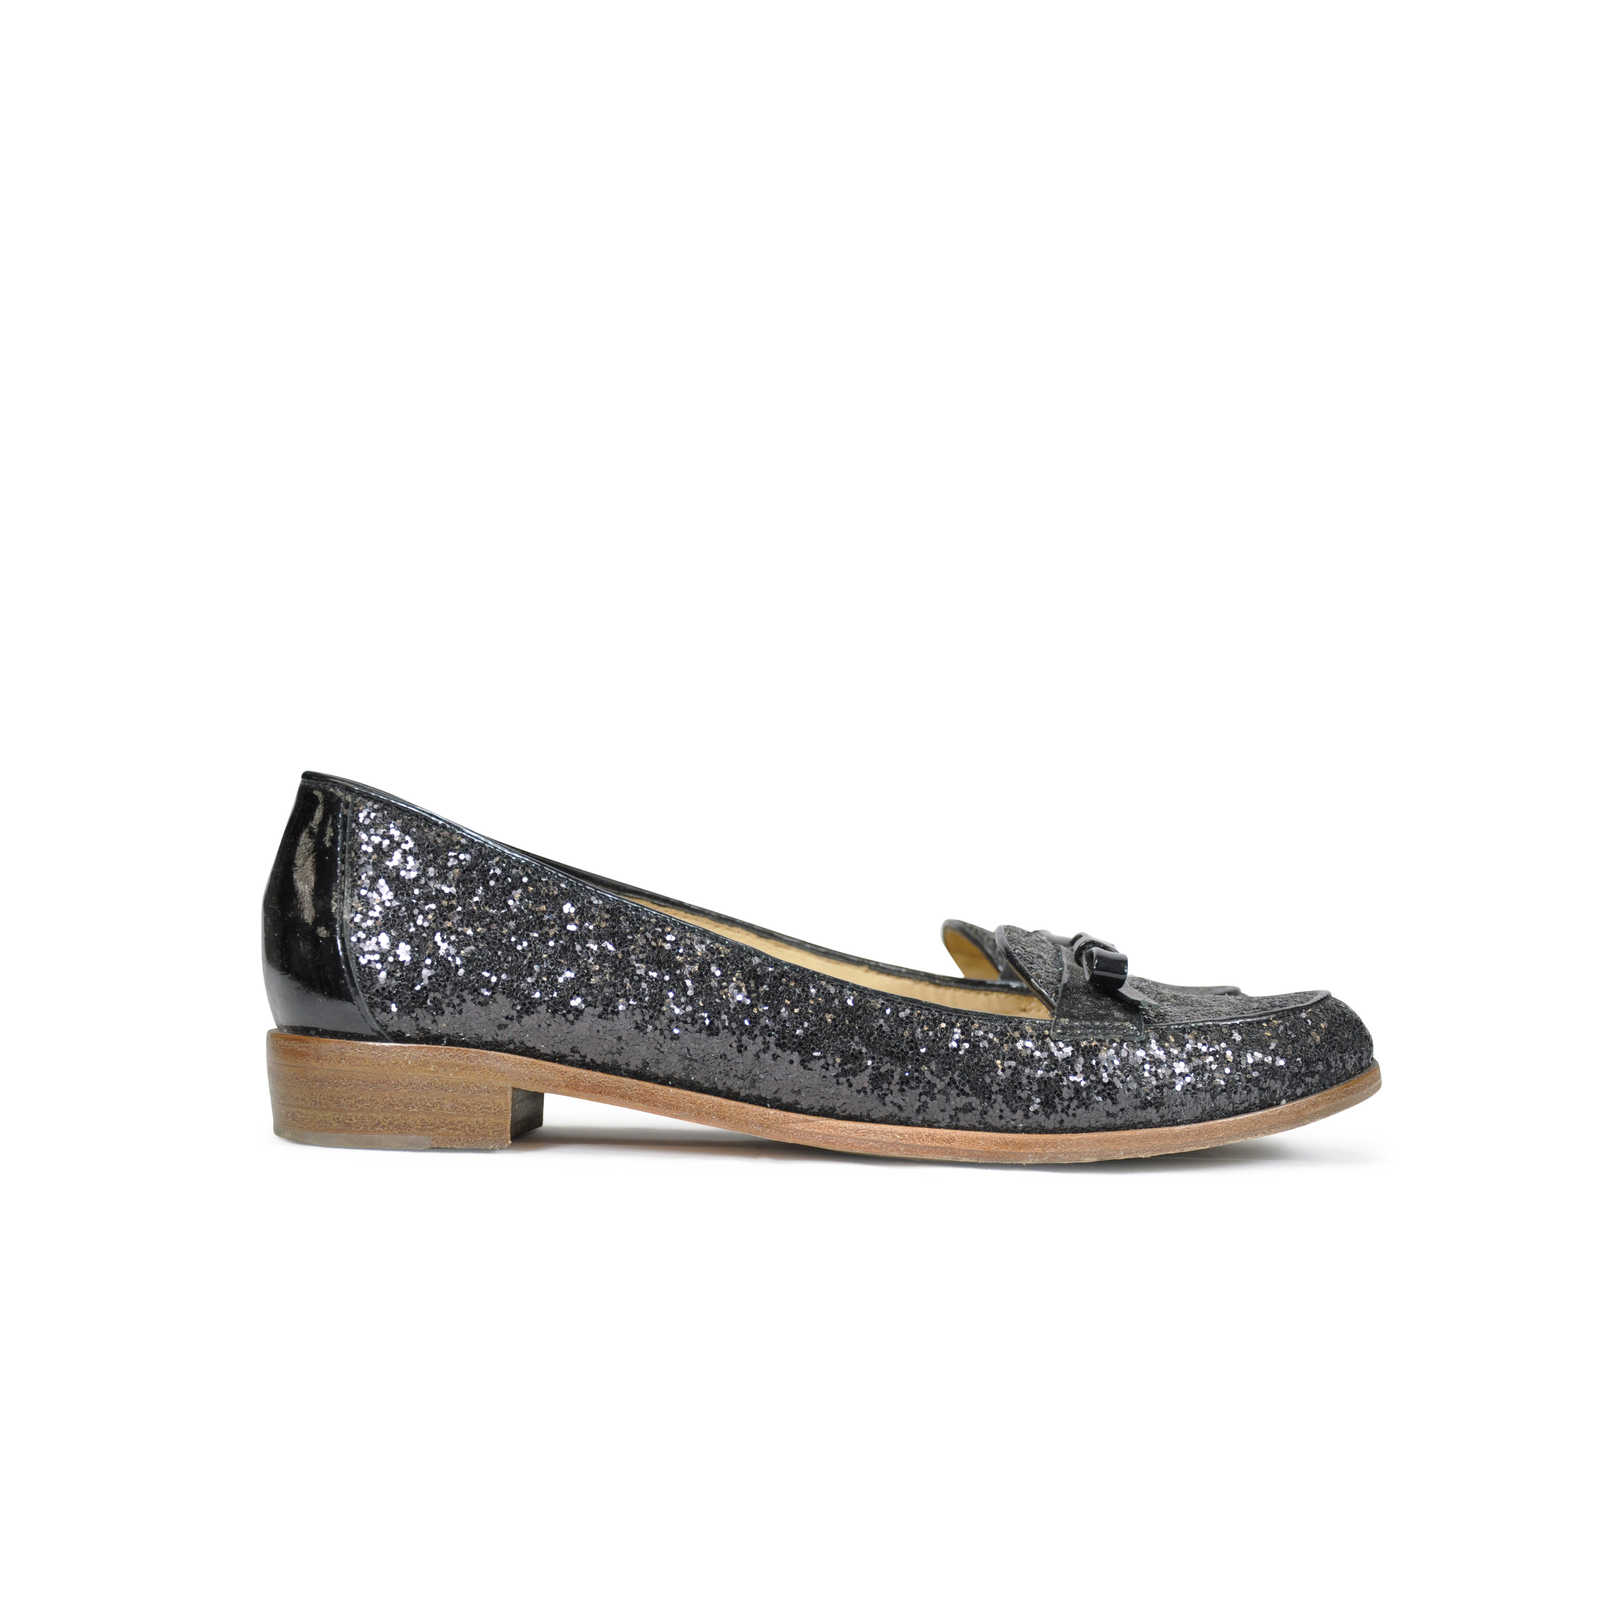 12c61bb8ea7d ... Authentic Second Hand Kate Spade Cora Glitter Loafers (PSS-090-00007)  ...